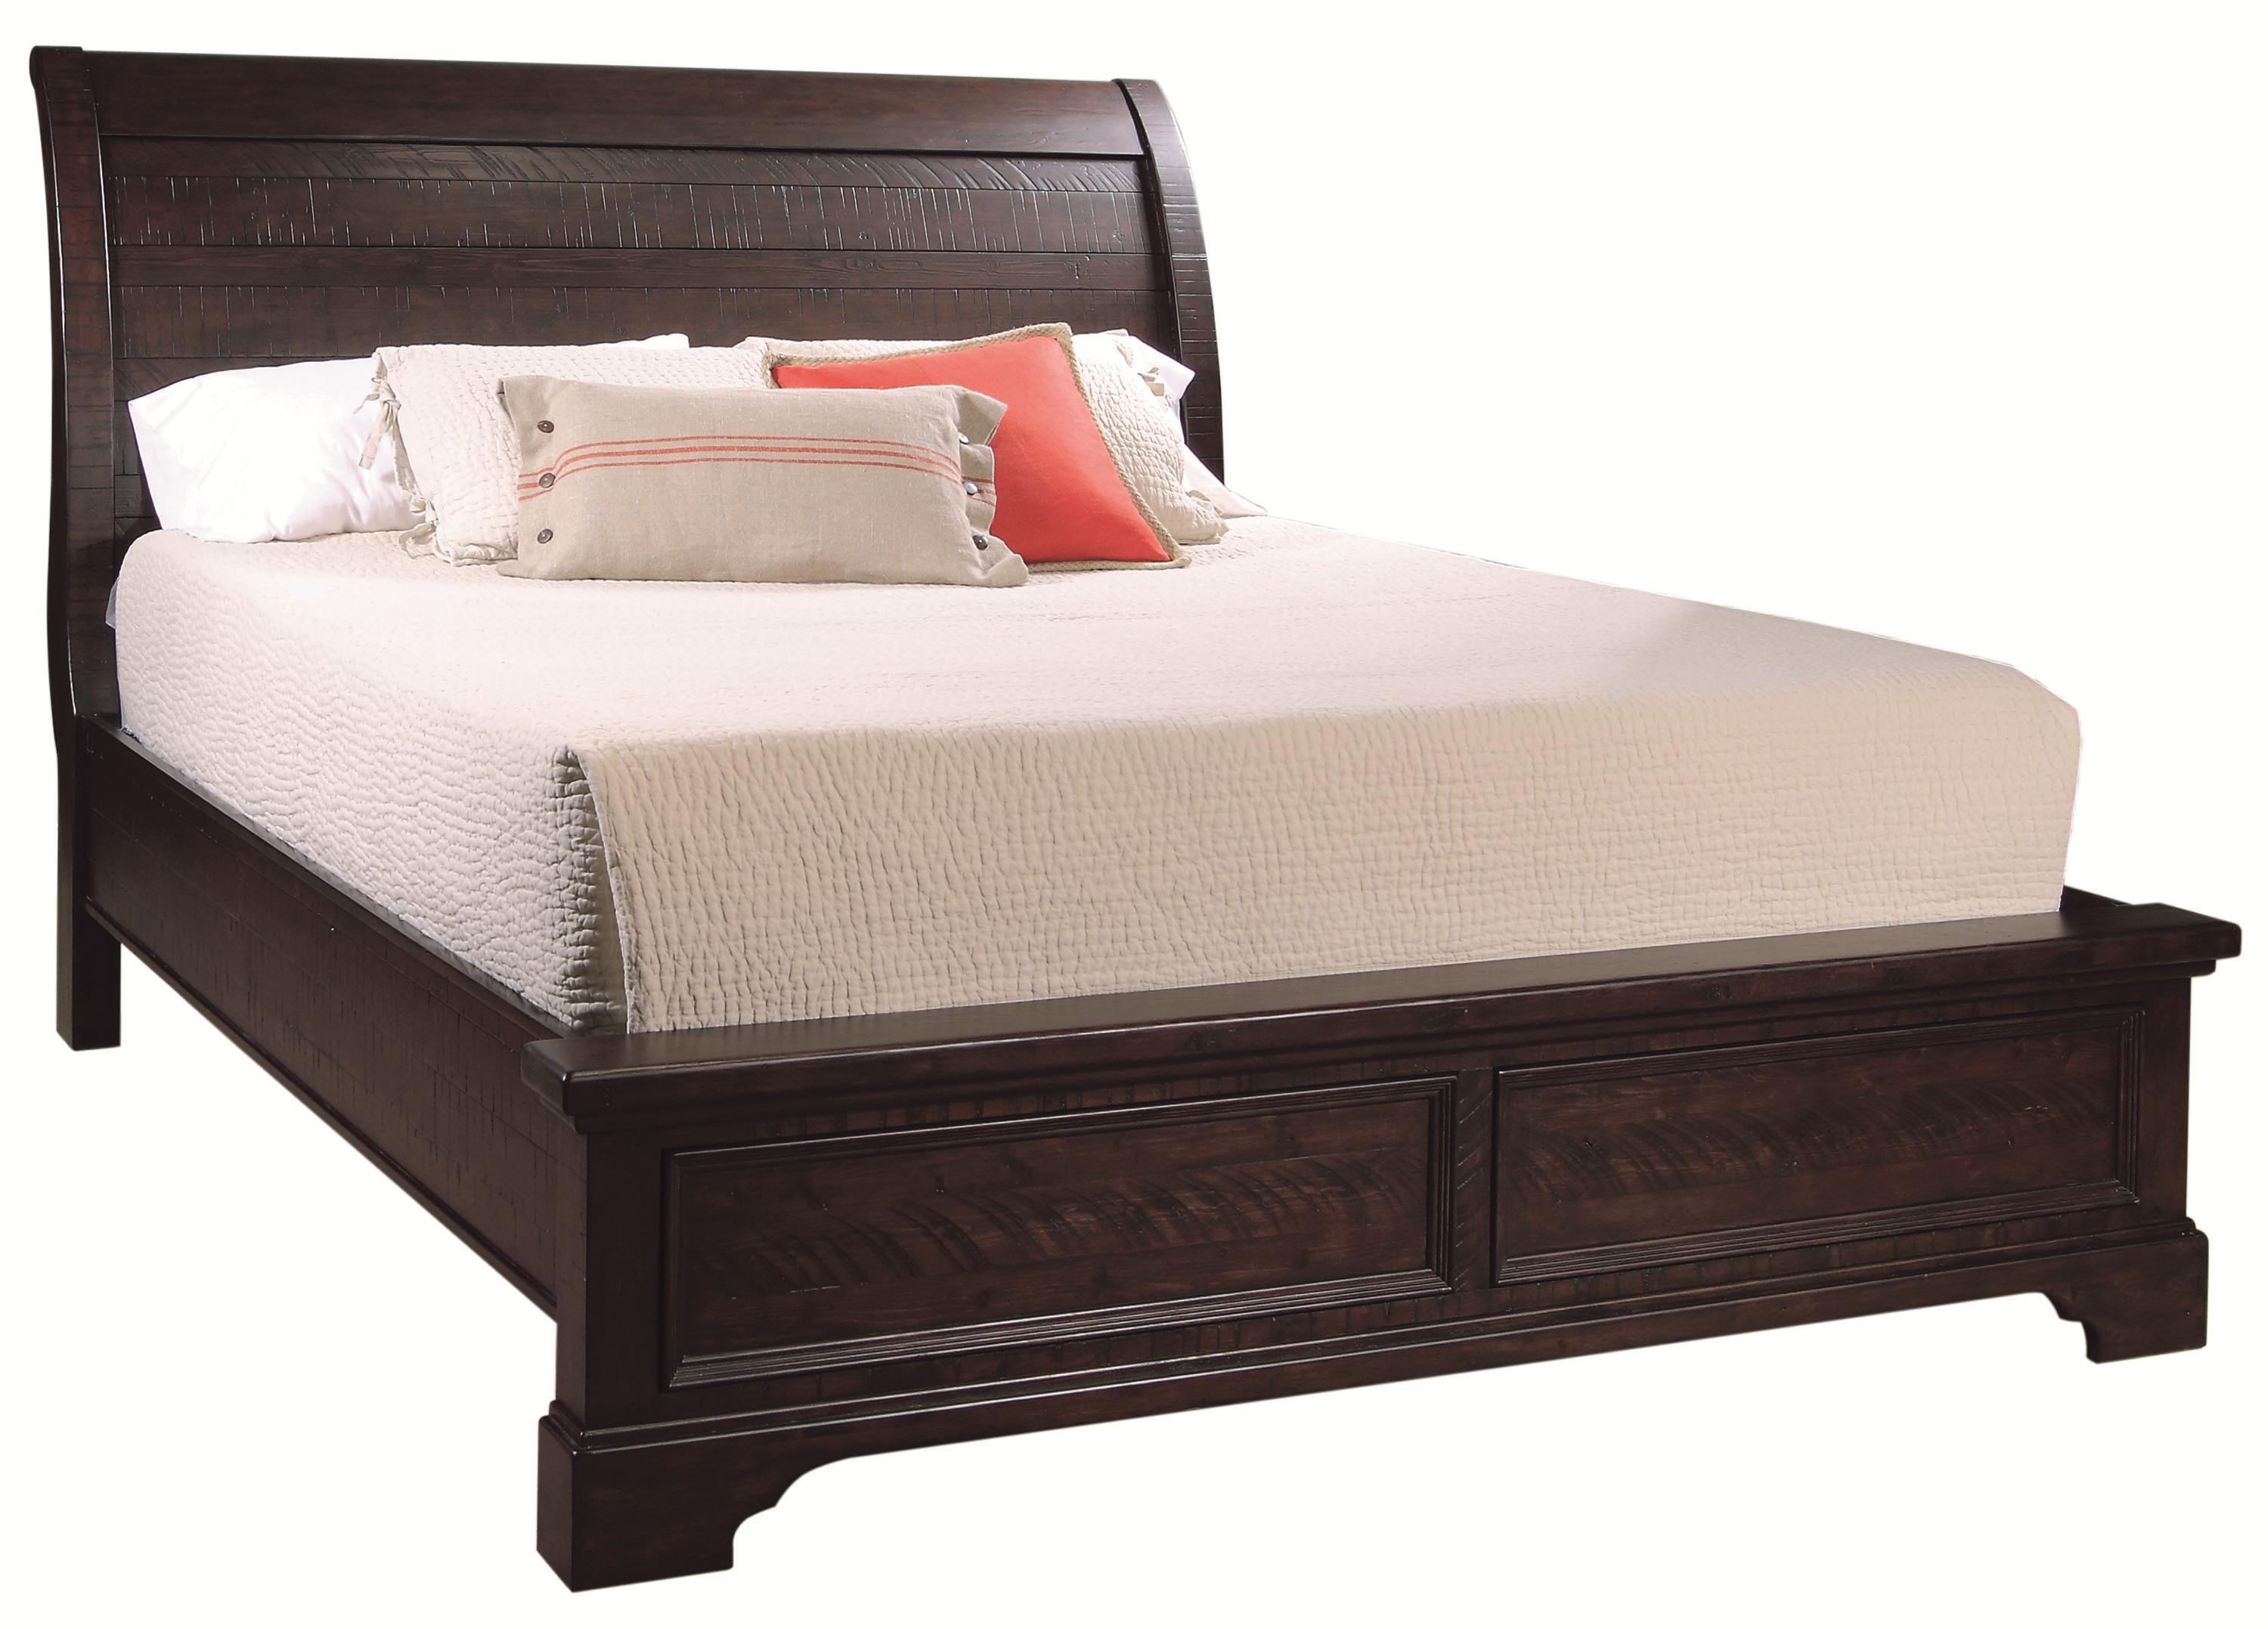 california king size sleigh bed with adjustable bed slats by